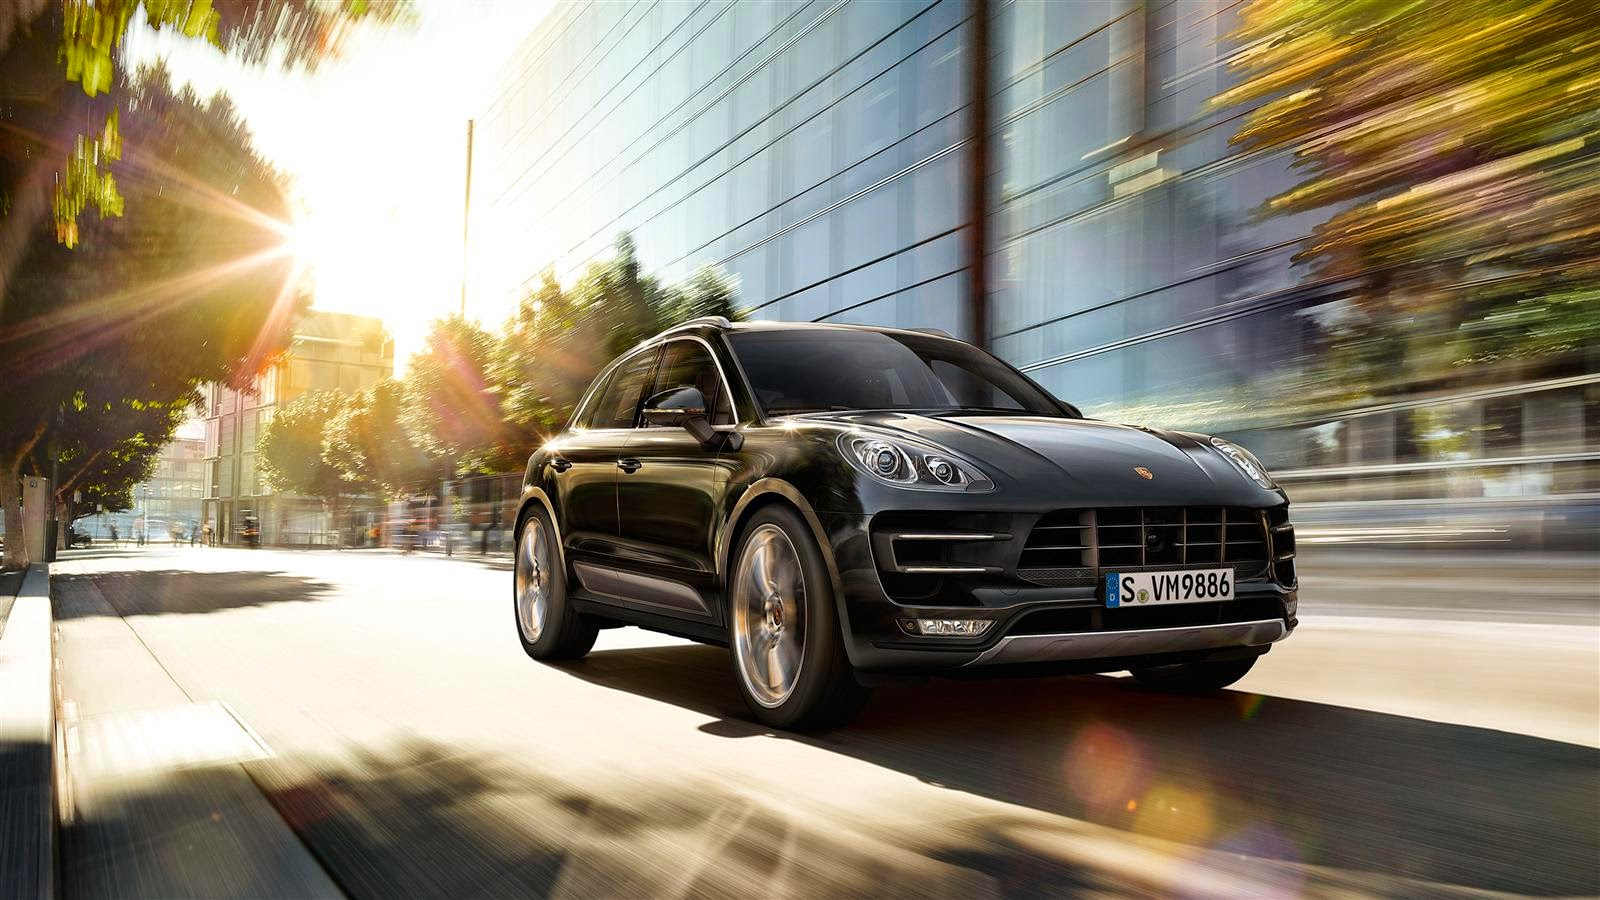 Porsche Macan Turbo Front View Image